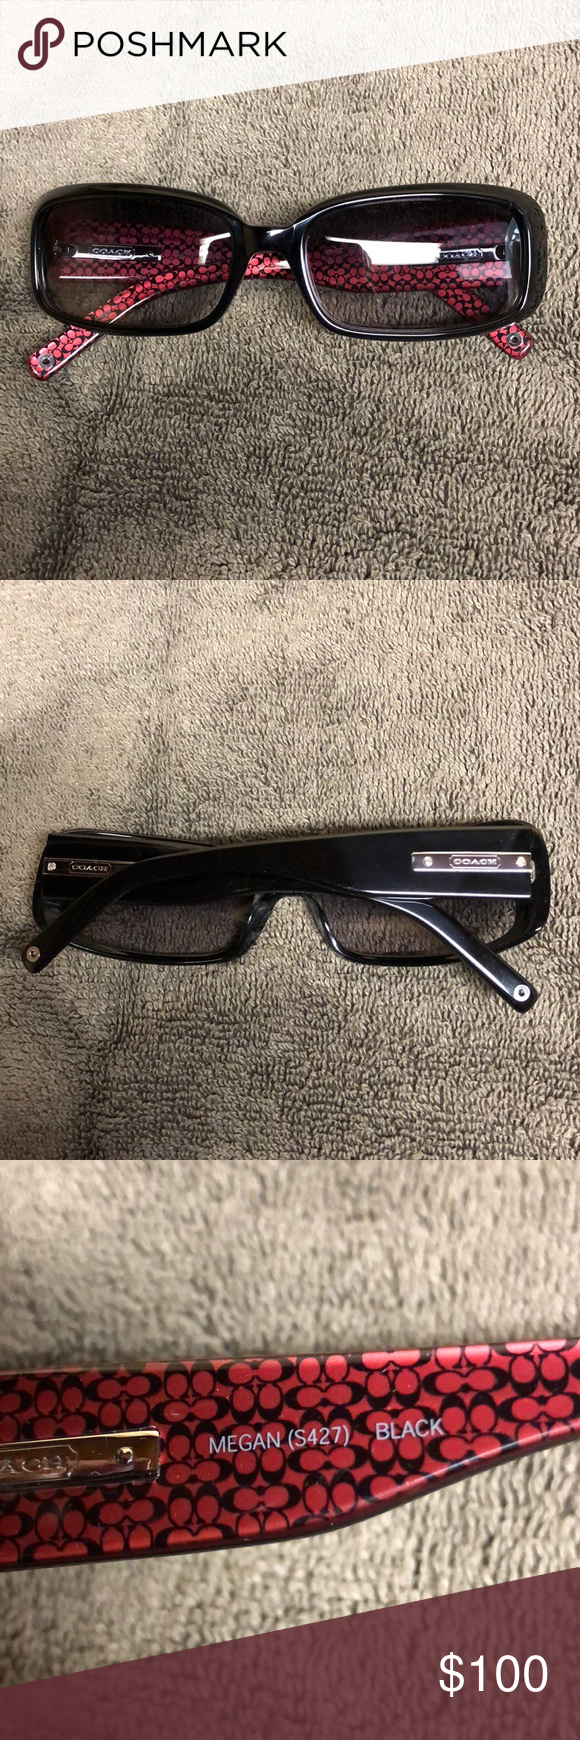 053d4a60ee COACH Megan sunglasses. New w signature case Brand new never worn authentic Coach  sunglasses. Style is Megan. See photos. Comes with the original signature  ...